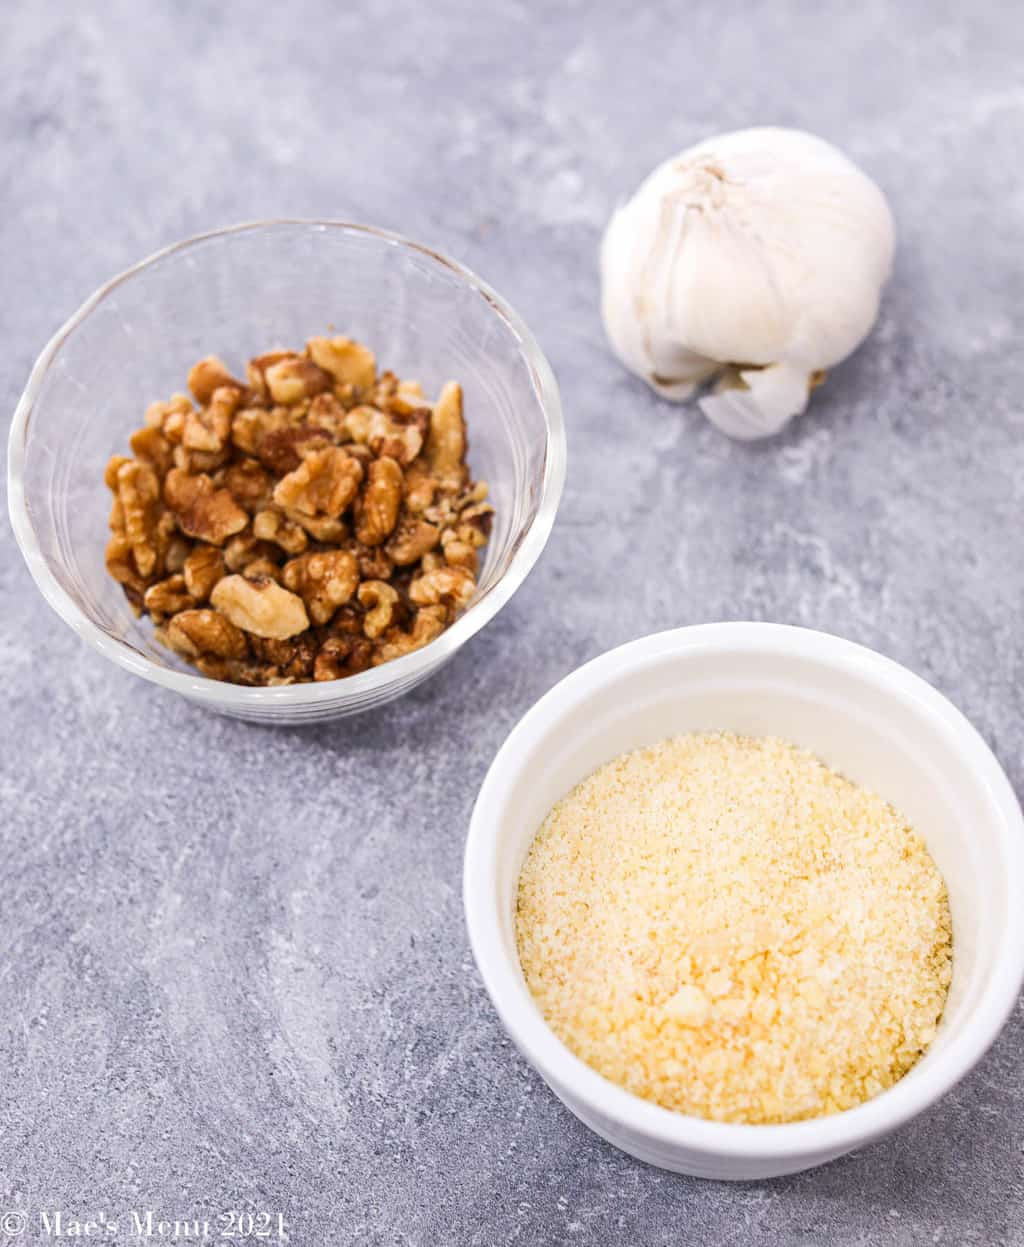 a clove of garlic, a dish of walnuts, and a small dish of grated parmesan cheese